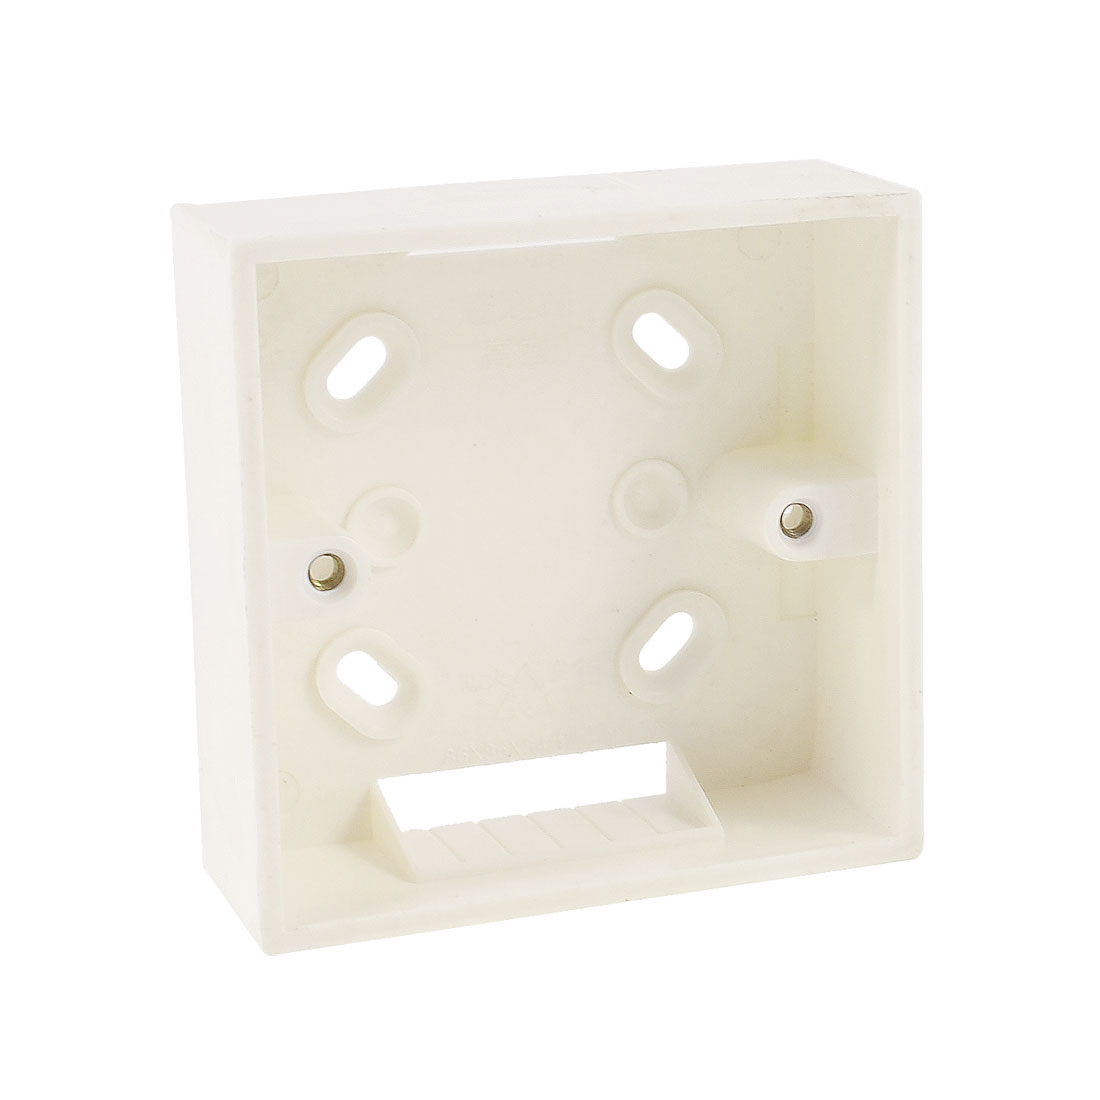 White Wall Plate Back Box for 86mm RJ45 Sockets Faceplate